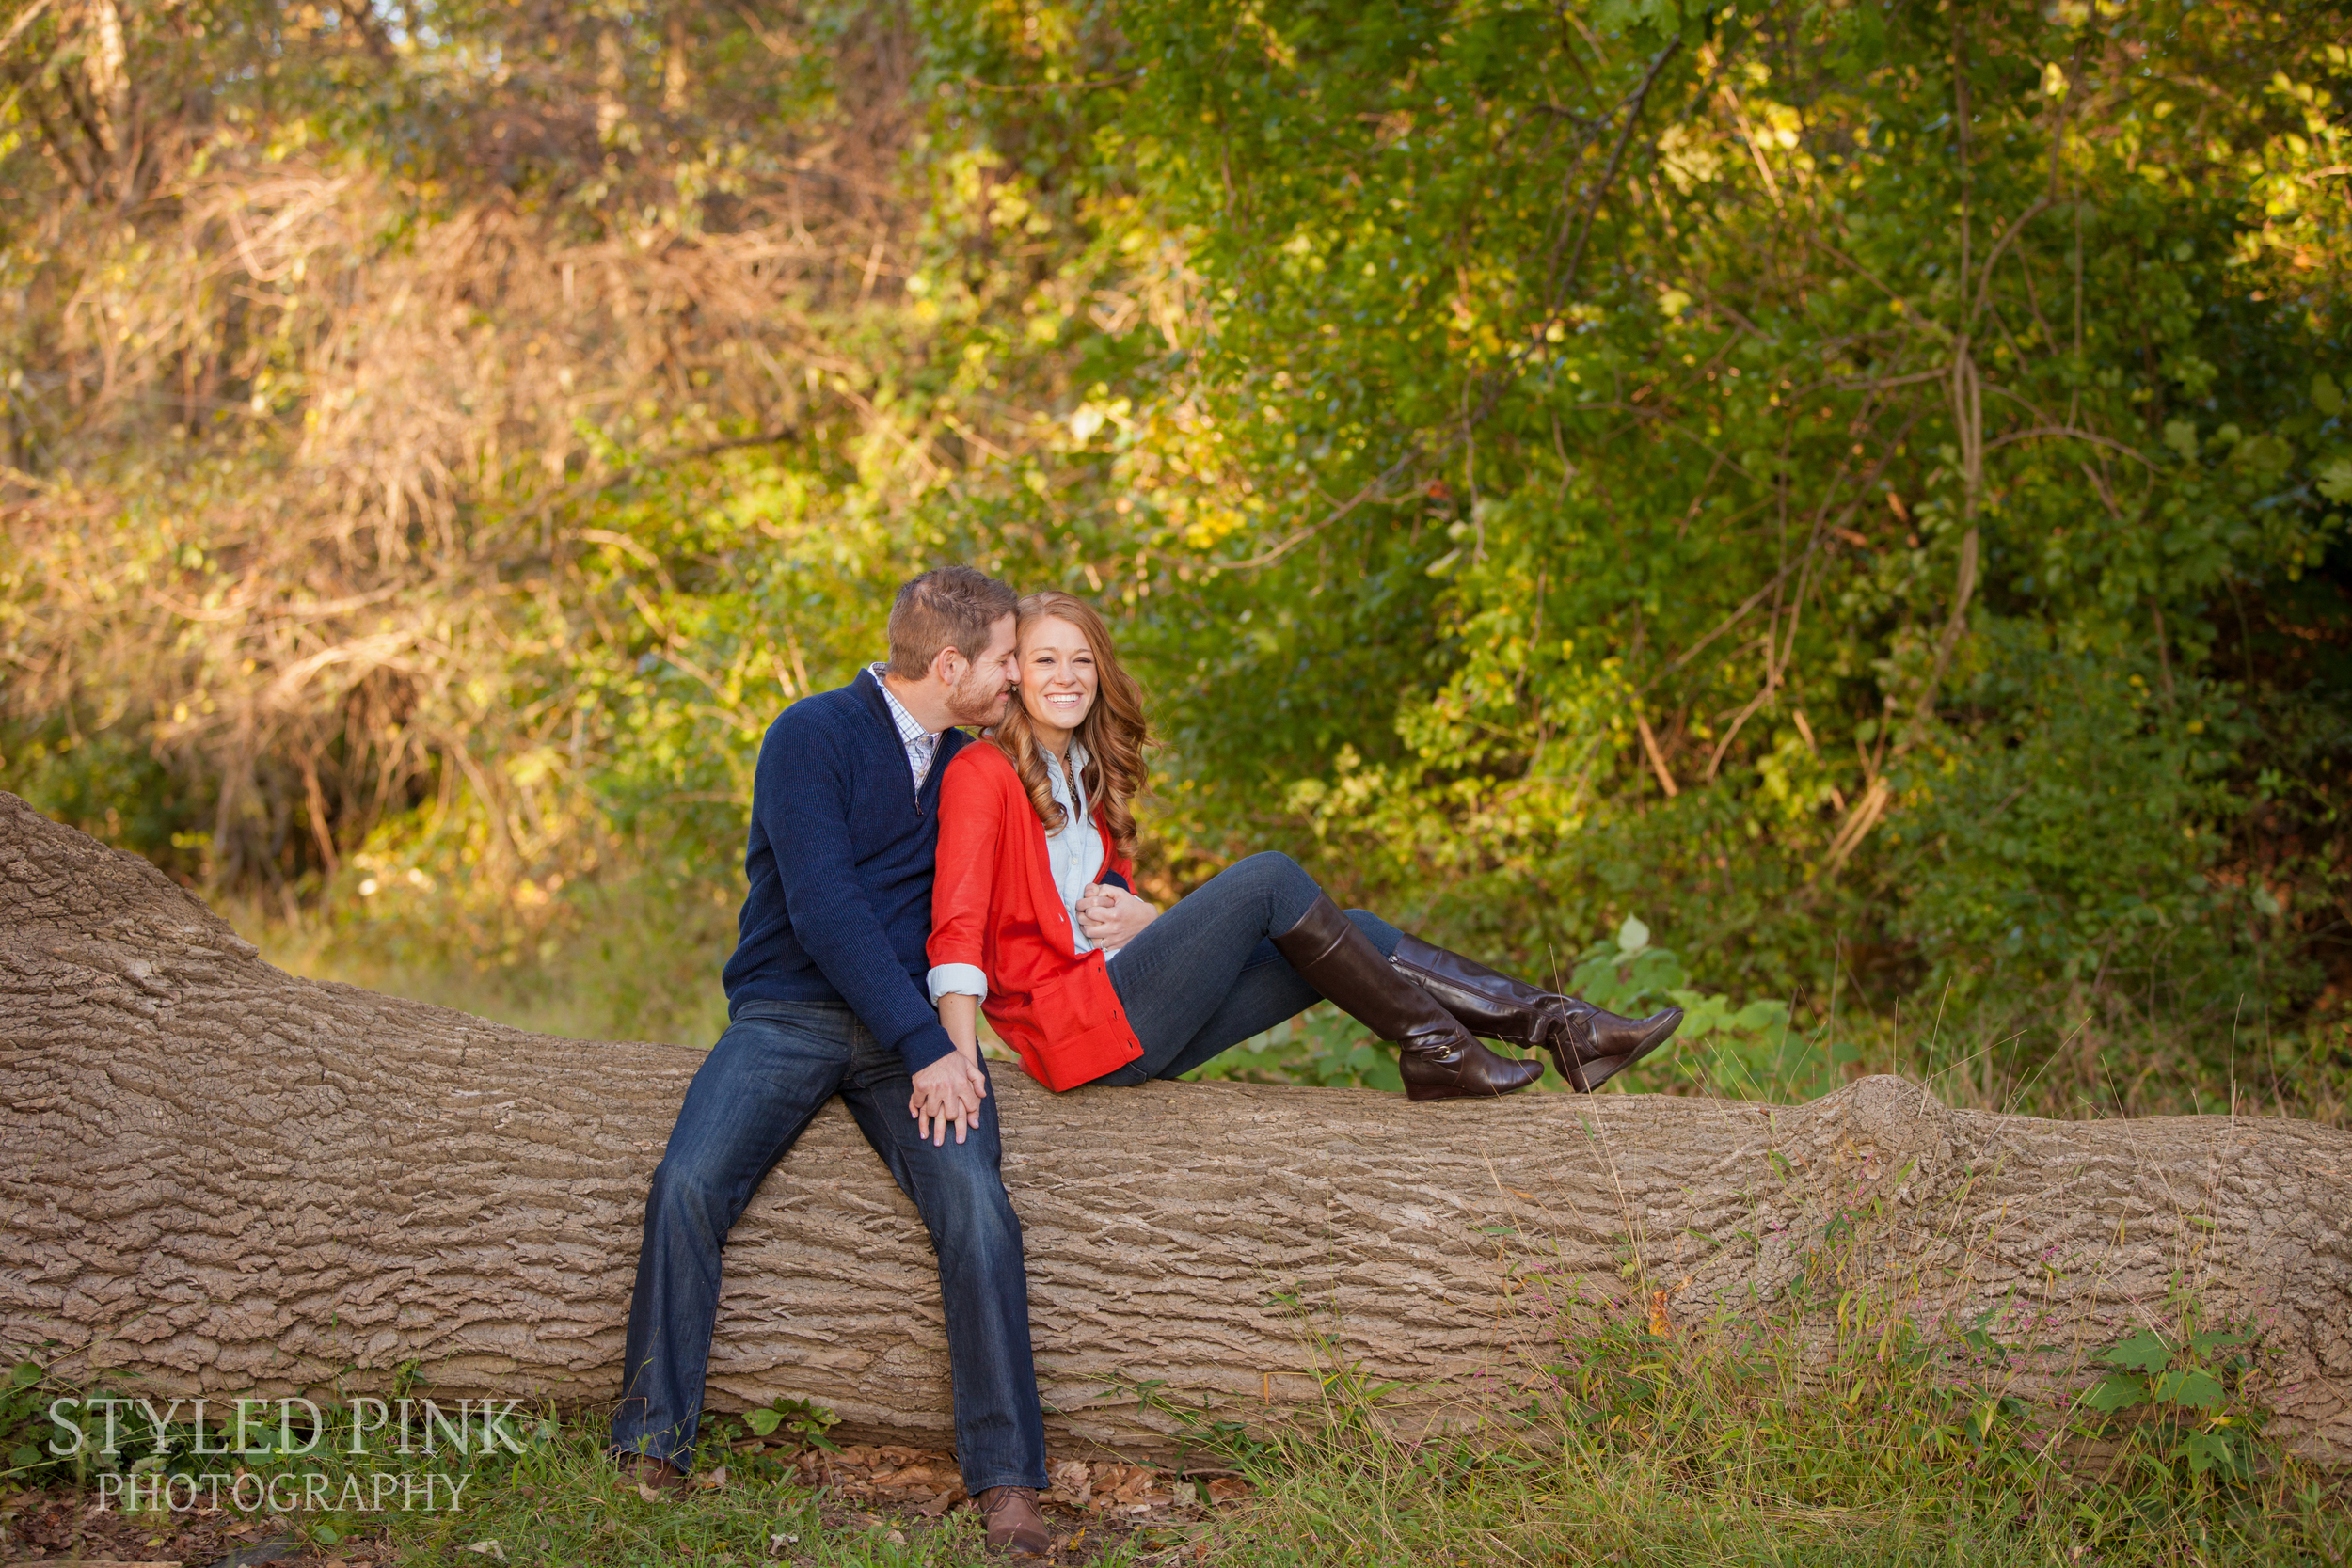 styled-pink-brandywine-state-park-engagement-5